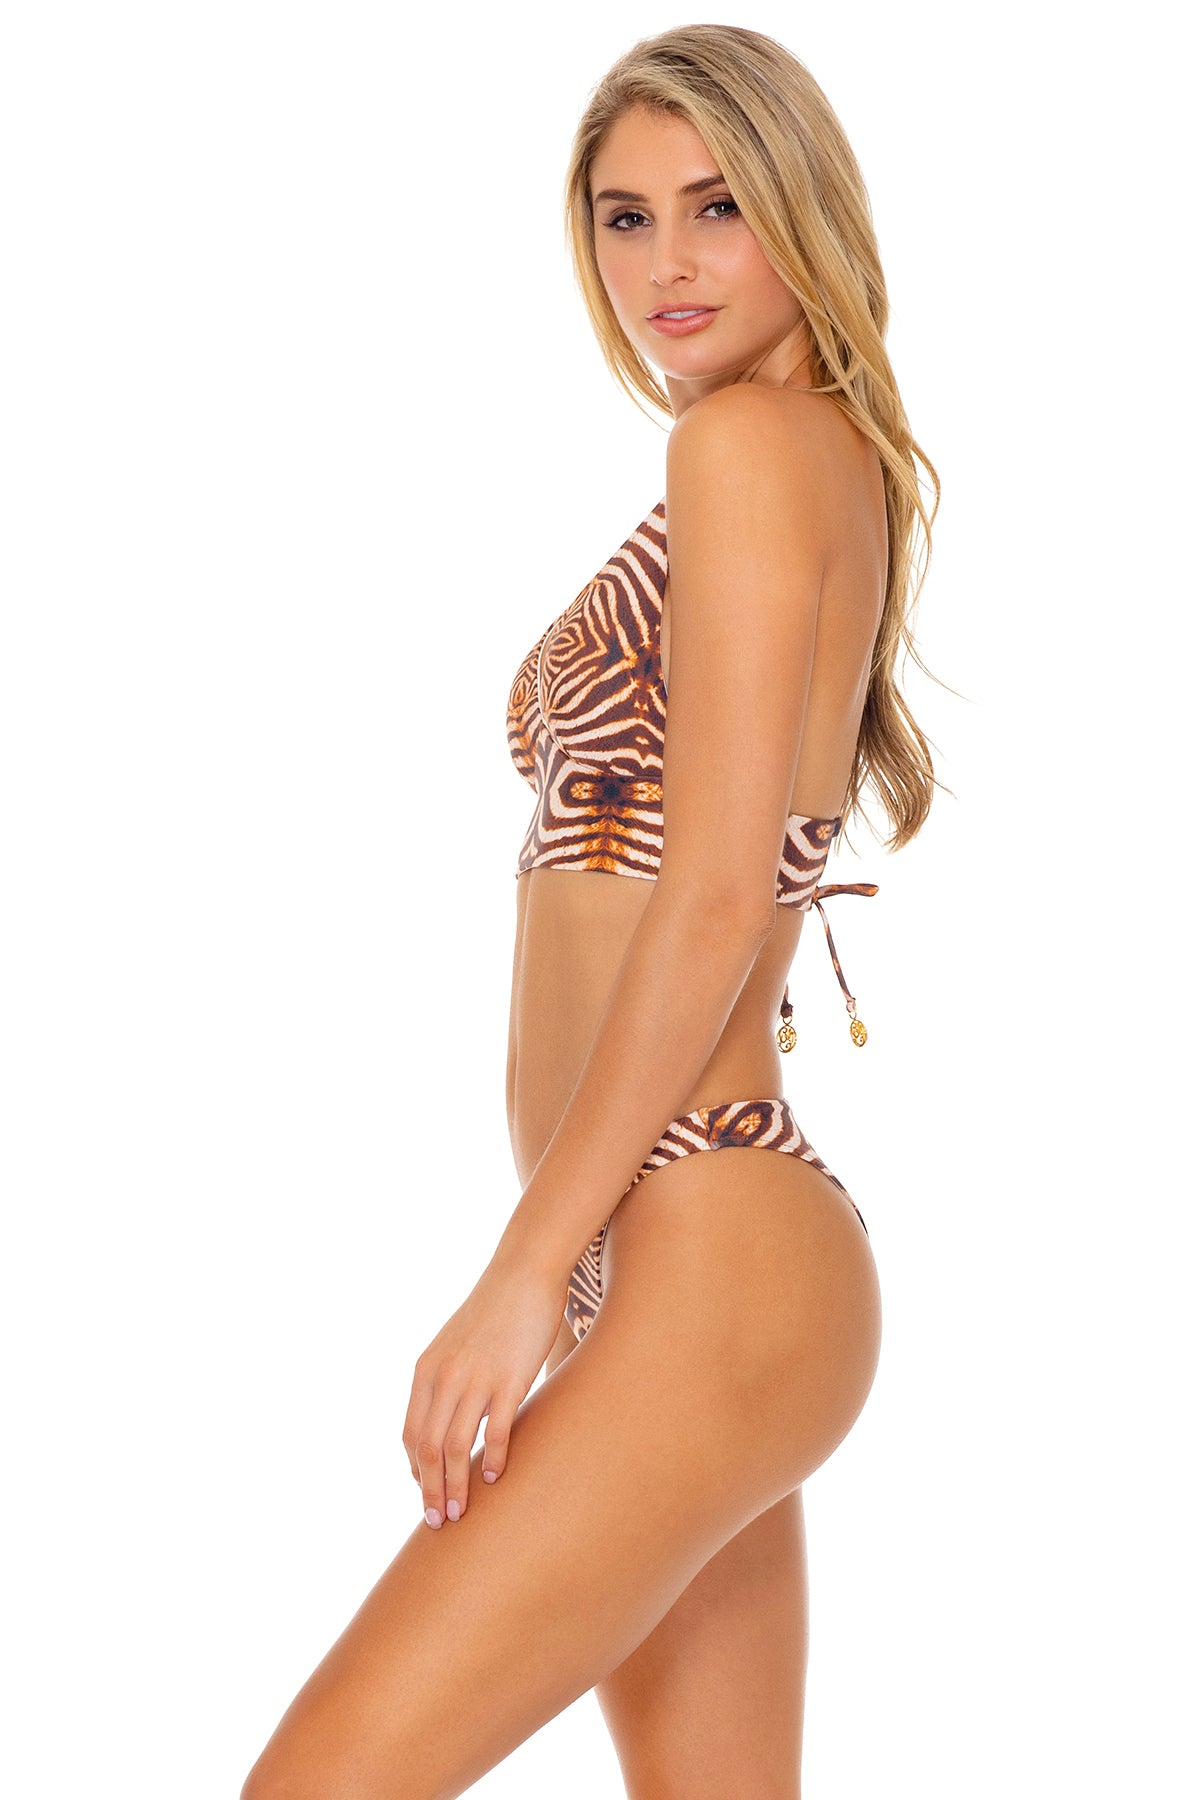 SAFARI DREAMS - Cross Back Bustier Top & High Leg Bottom • Brown